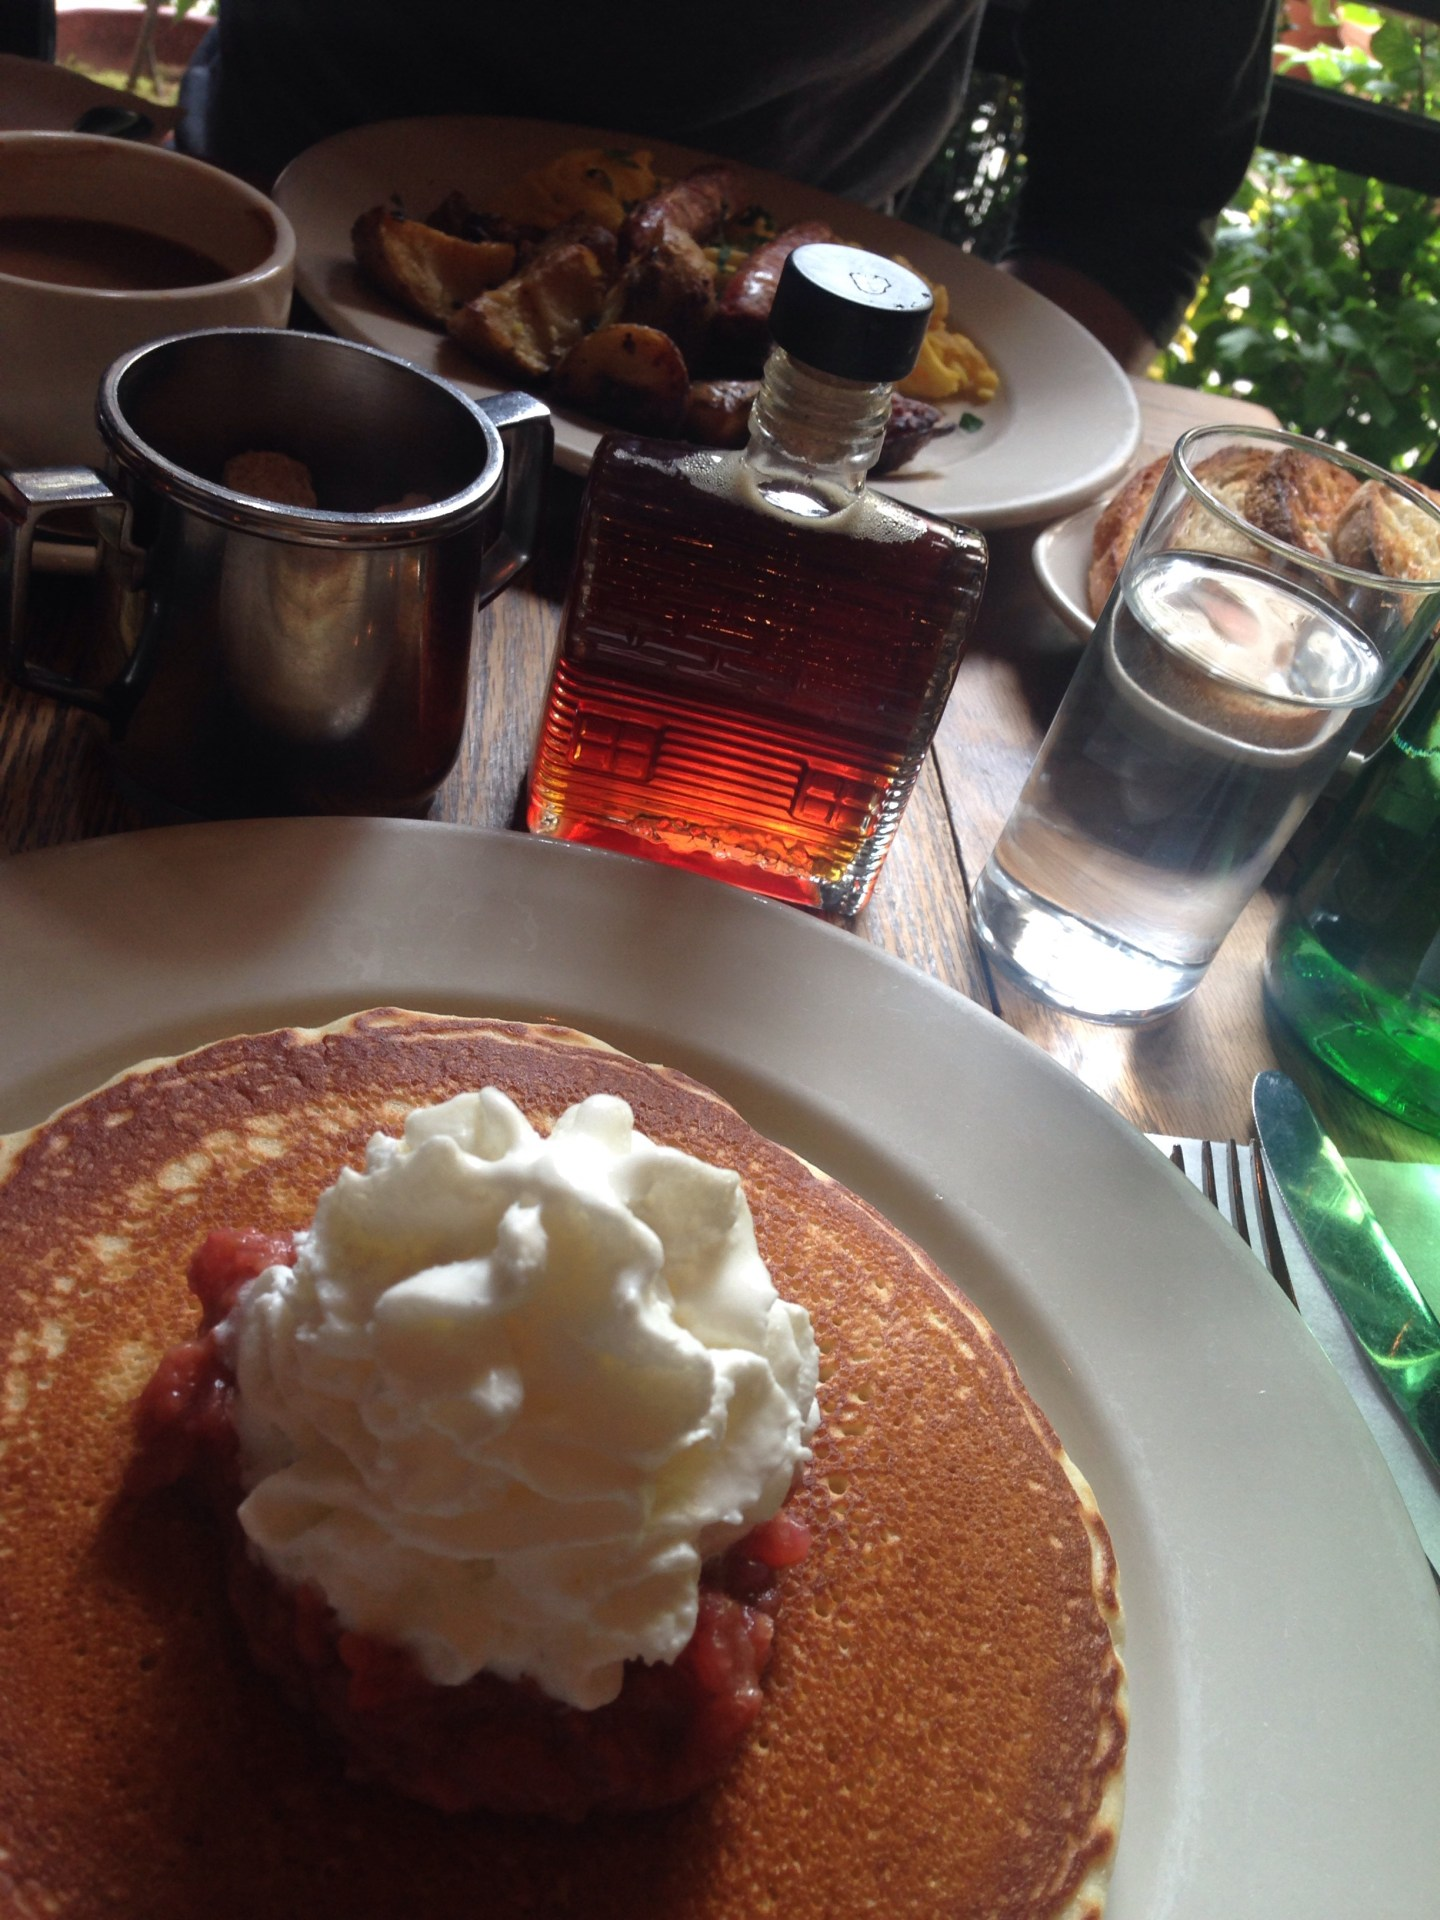 American pancakes with rhubarb compote, cream and maple syrup